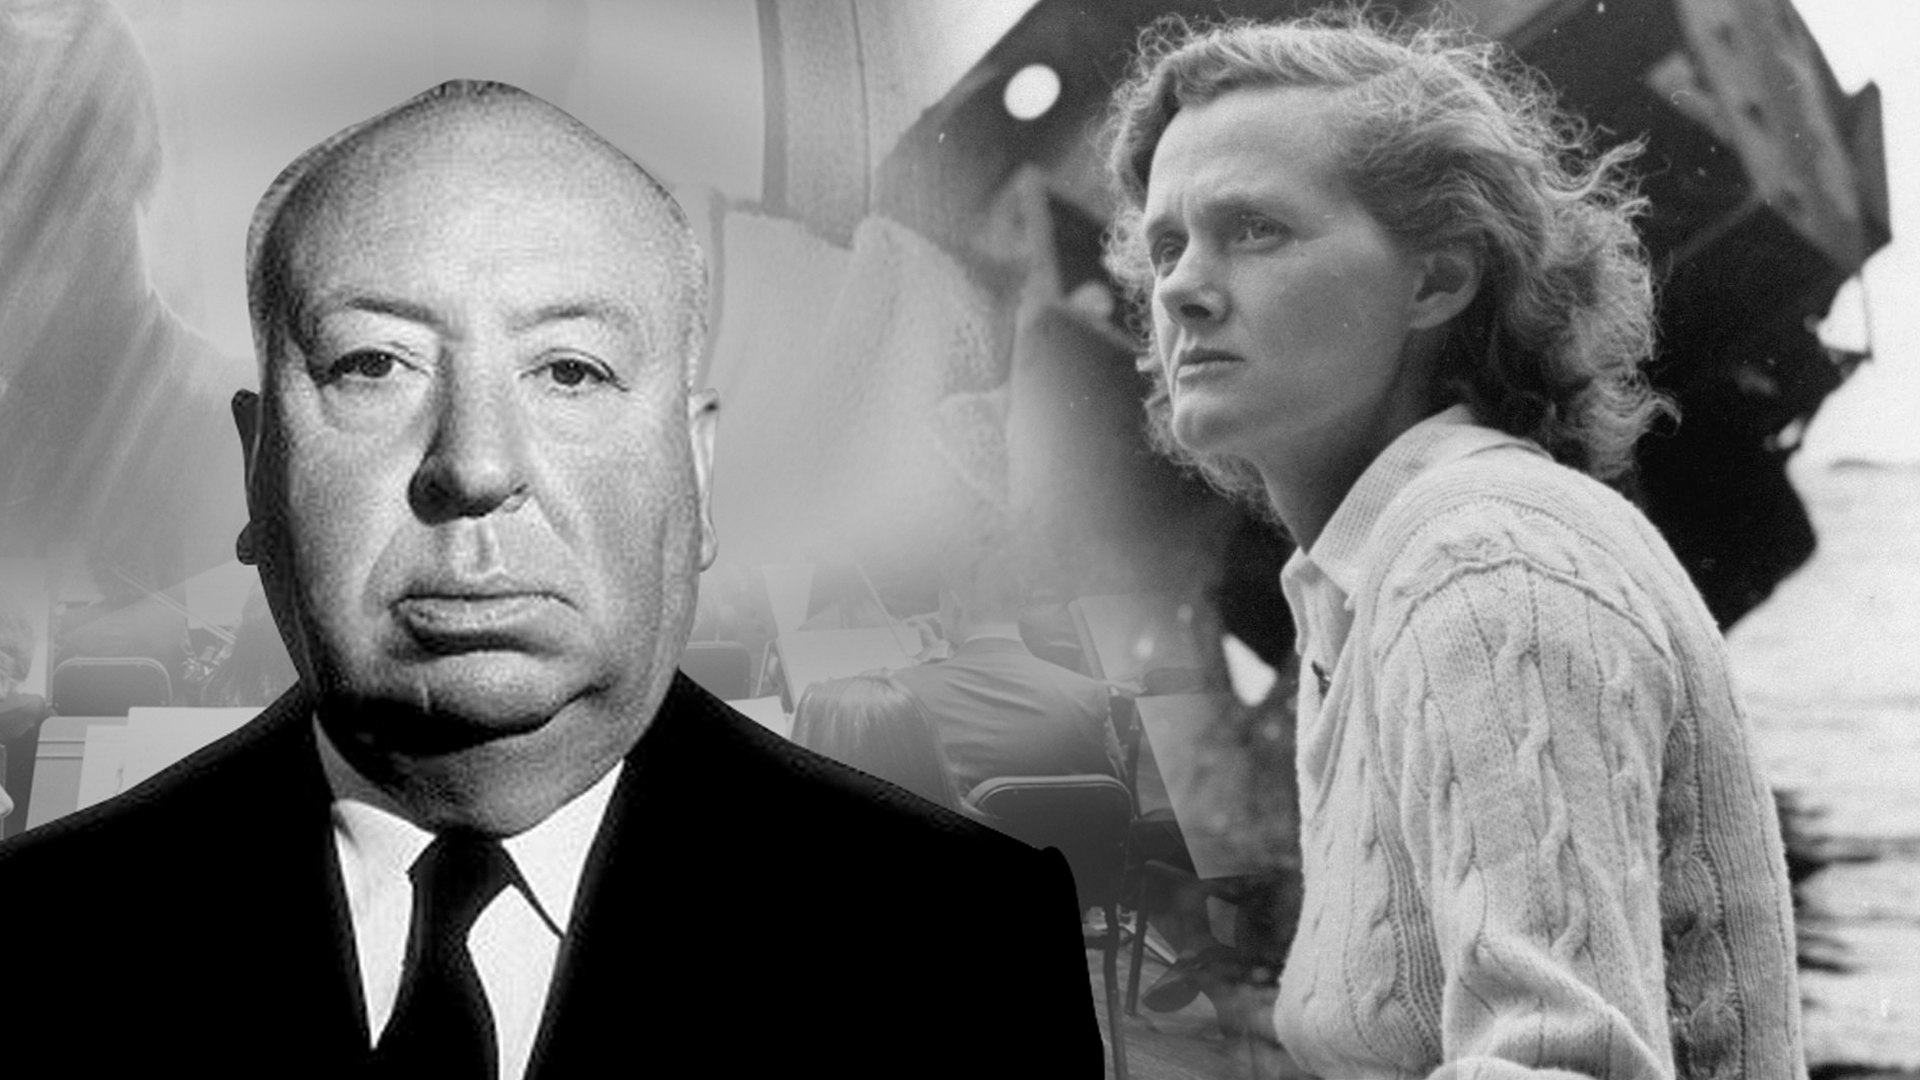 Mistress of Menace and the Master of Suspense. Daphne du Maurier and Alfred Hitchcock